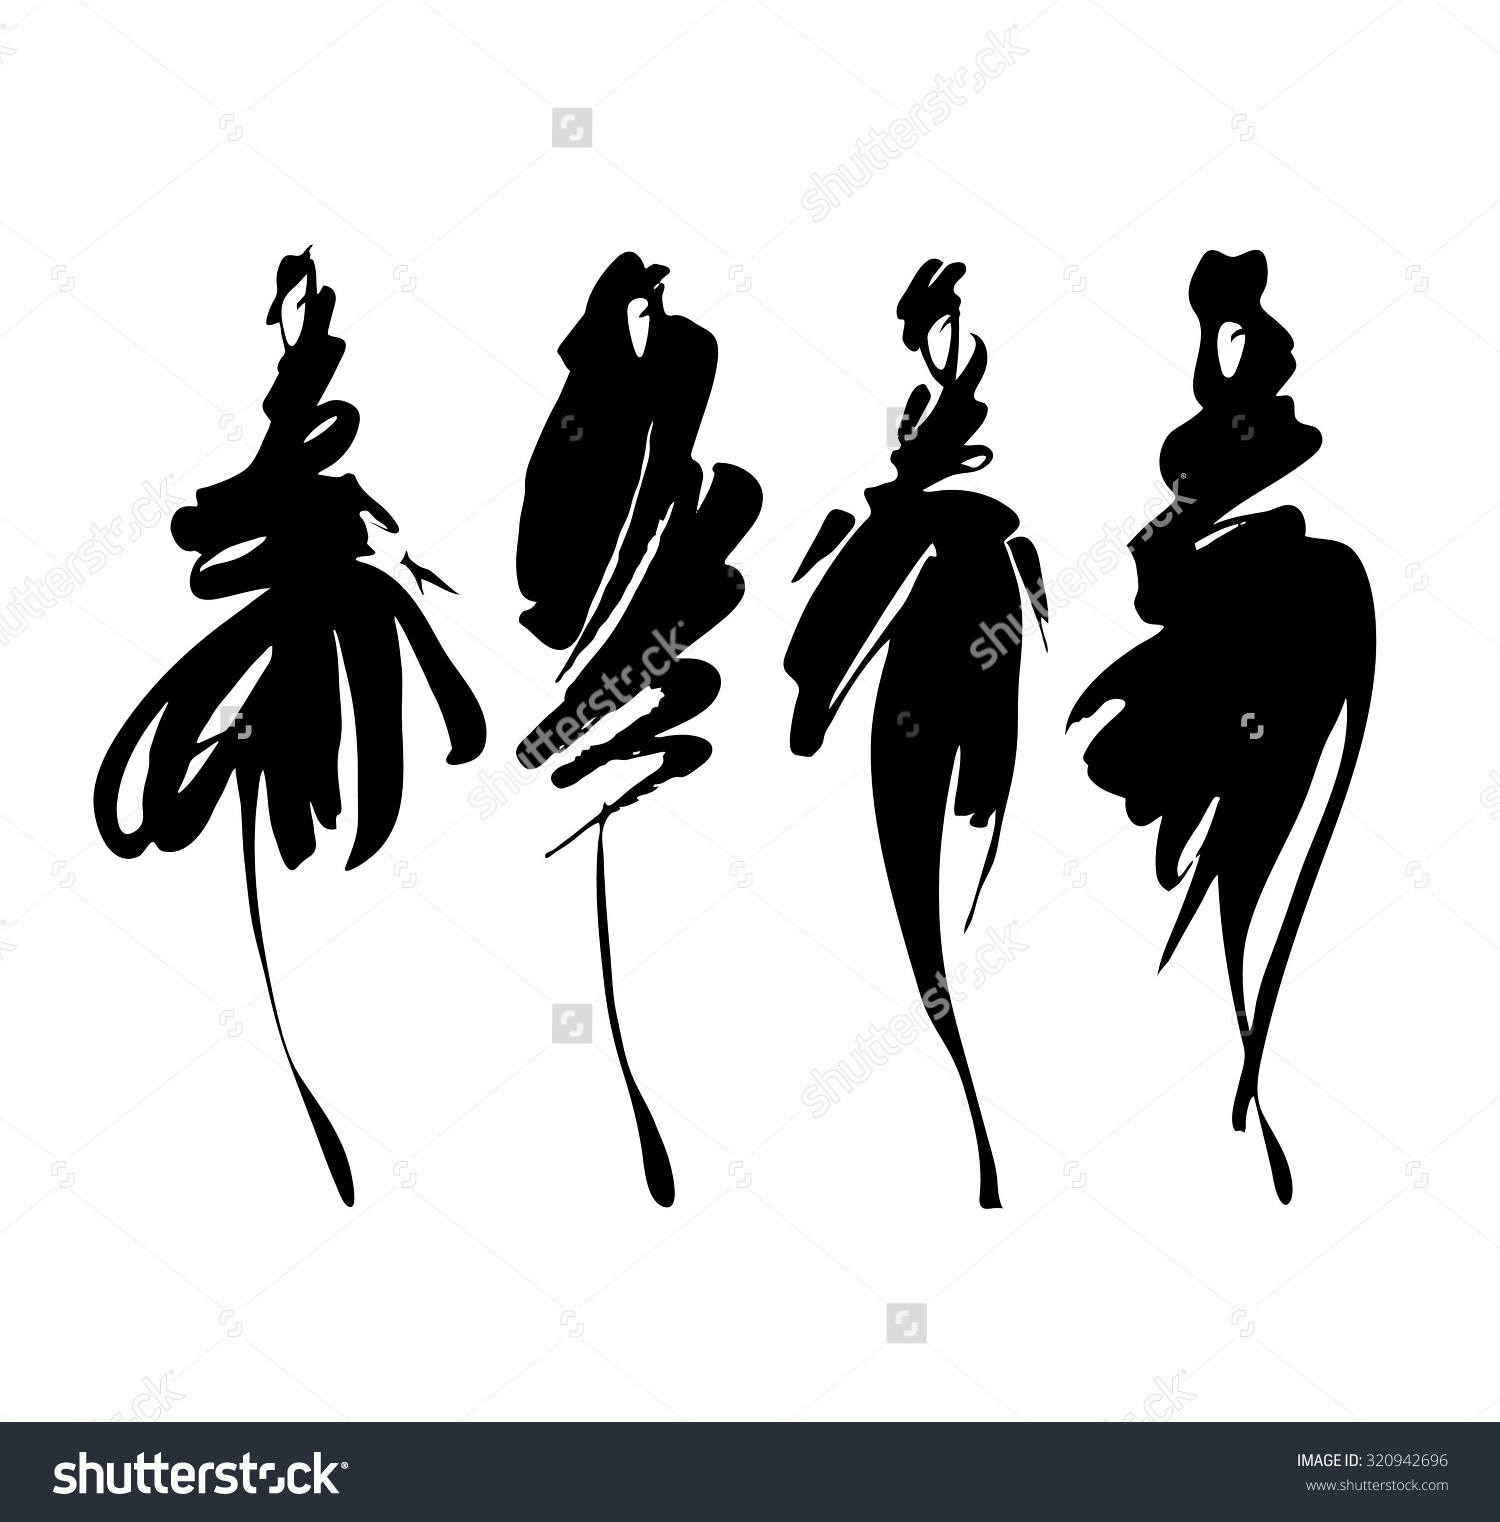 Fashion Model Silhouette Clip Art.